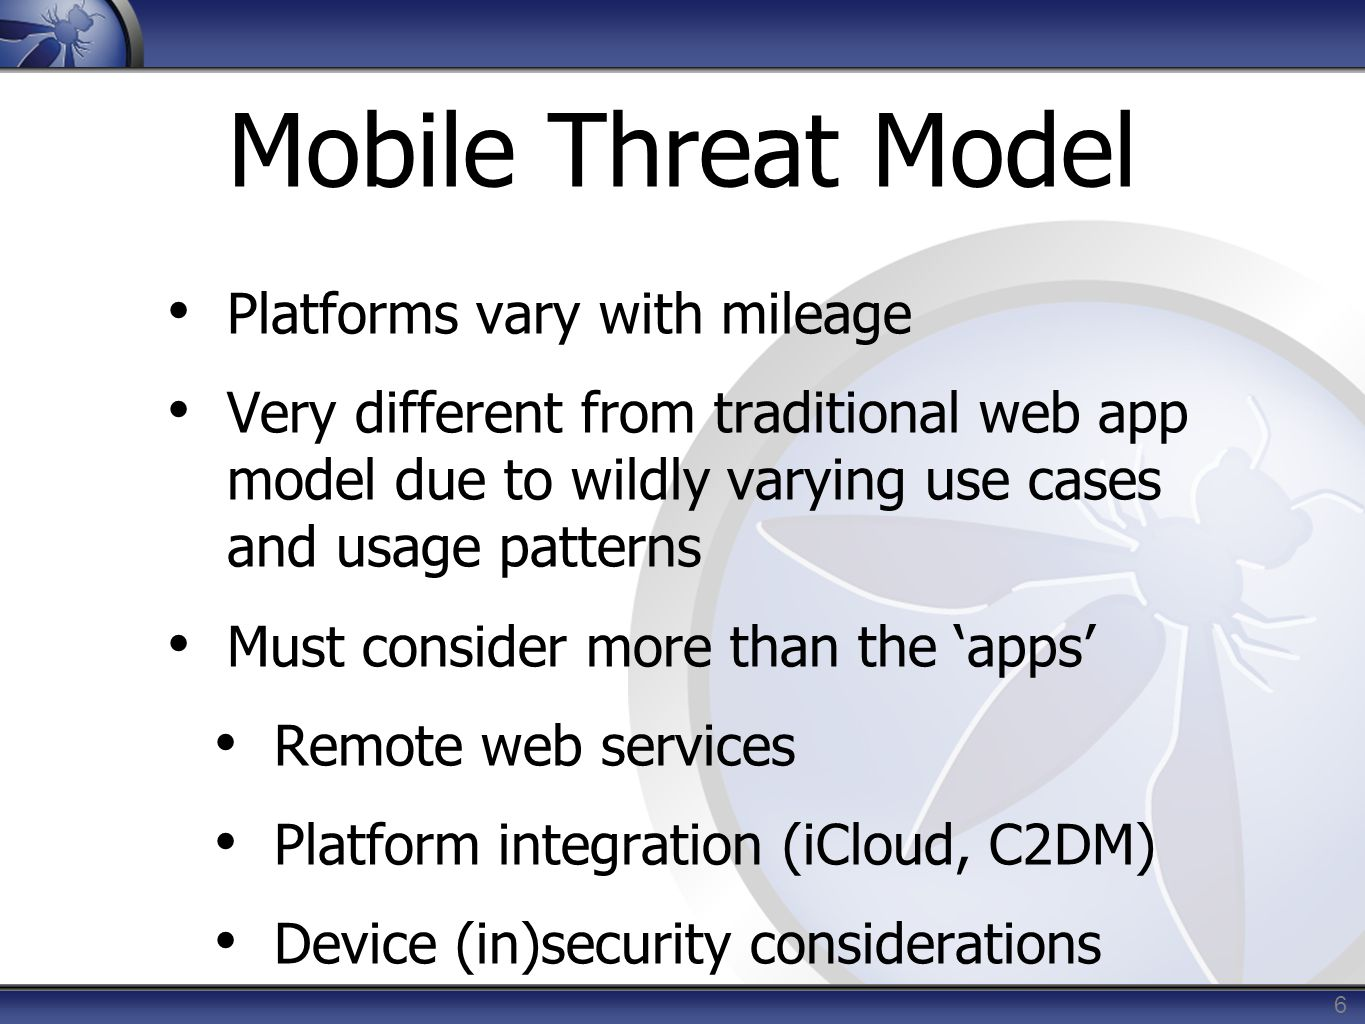 Mobile Threat Model Platforms vary with mileage